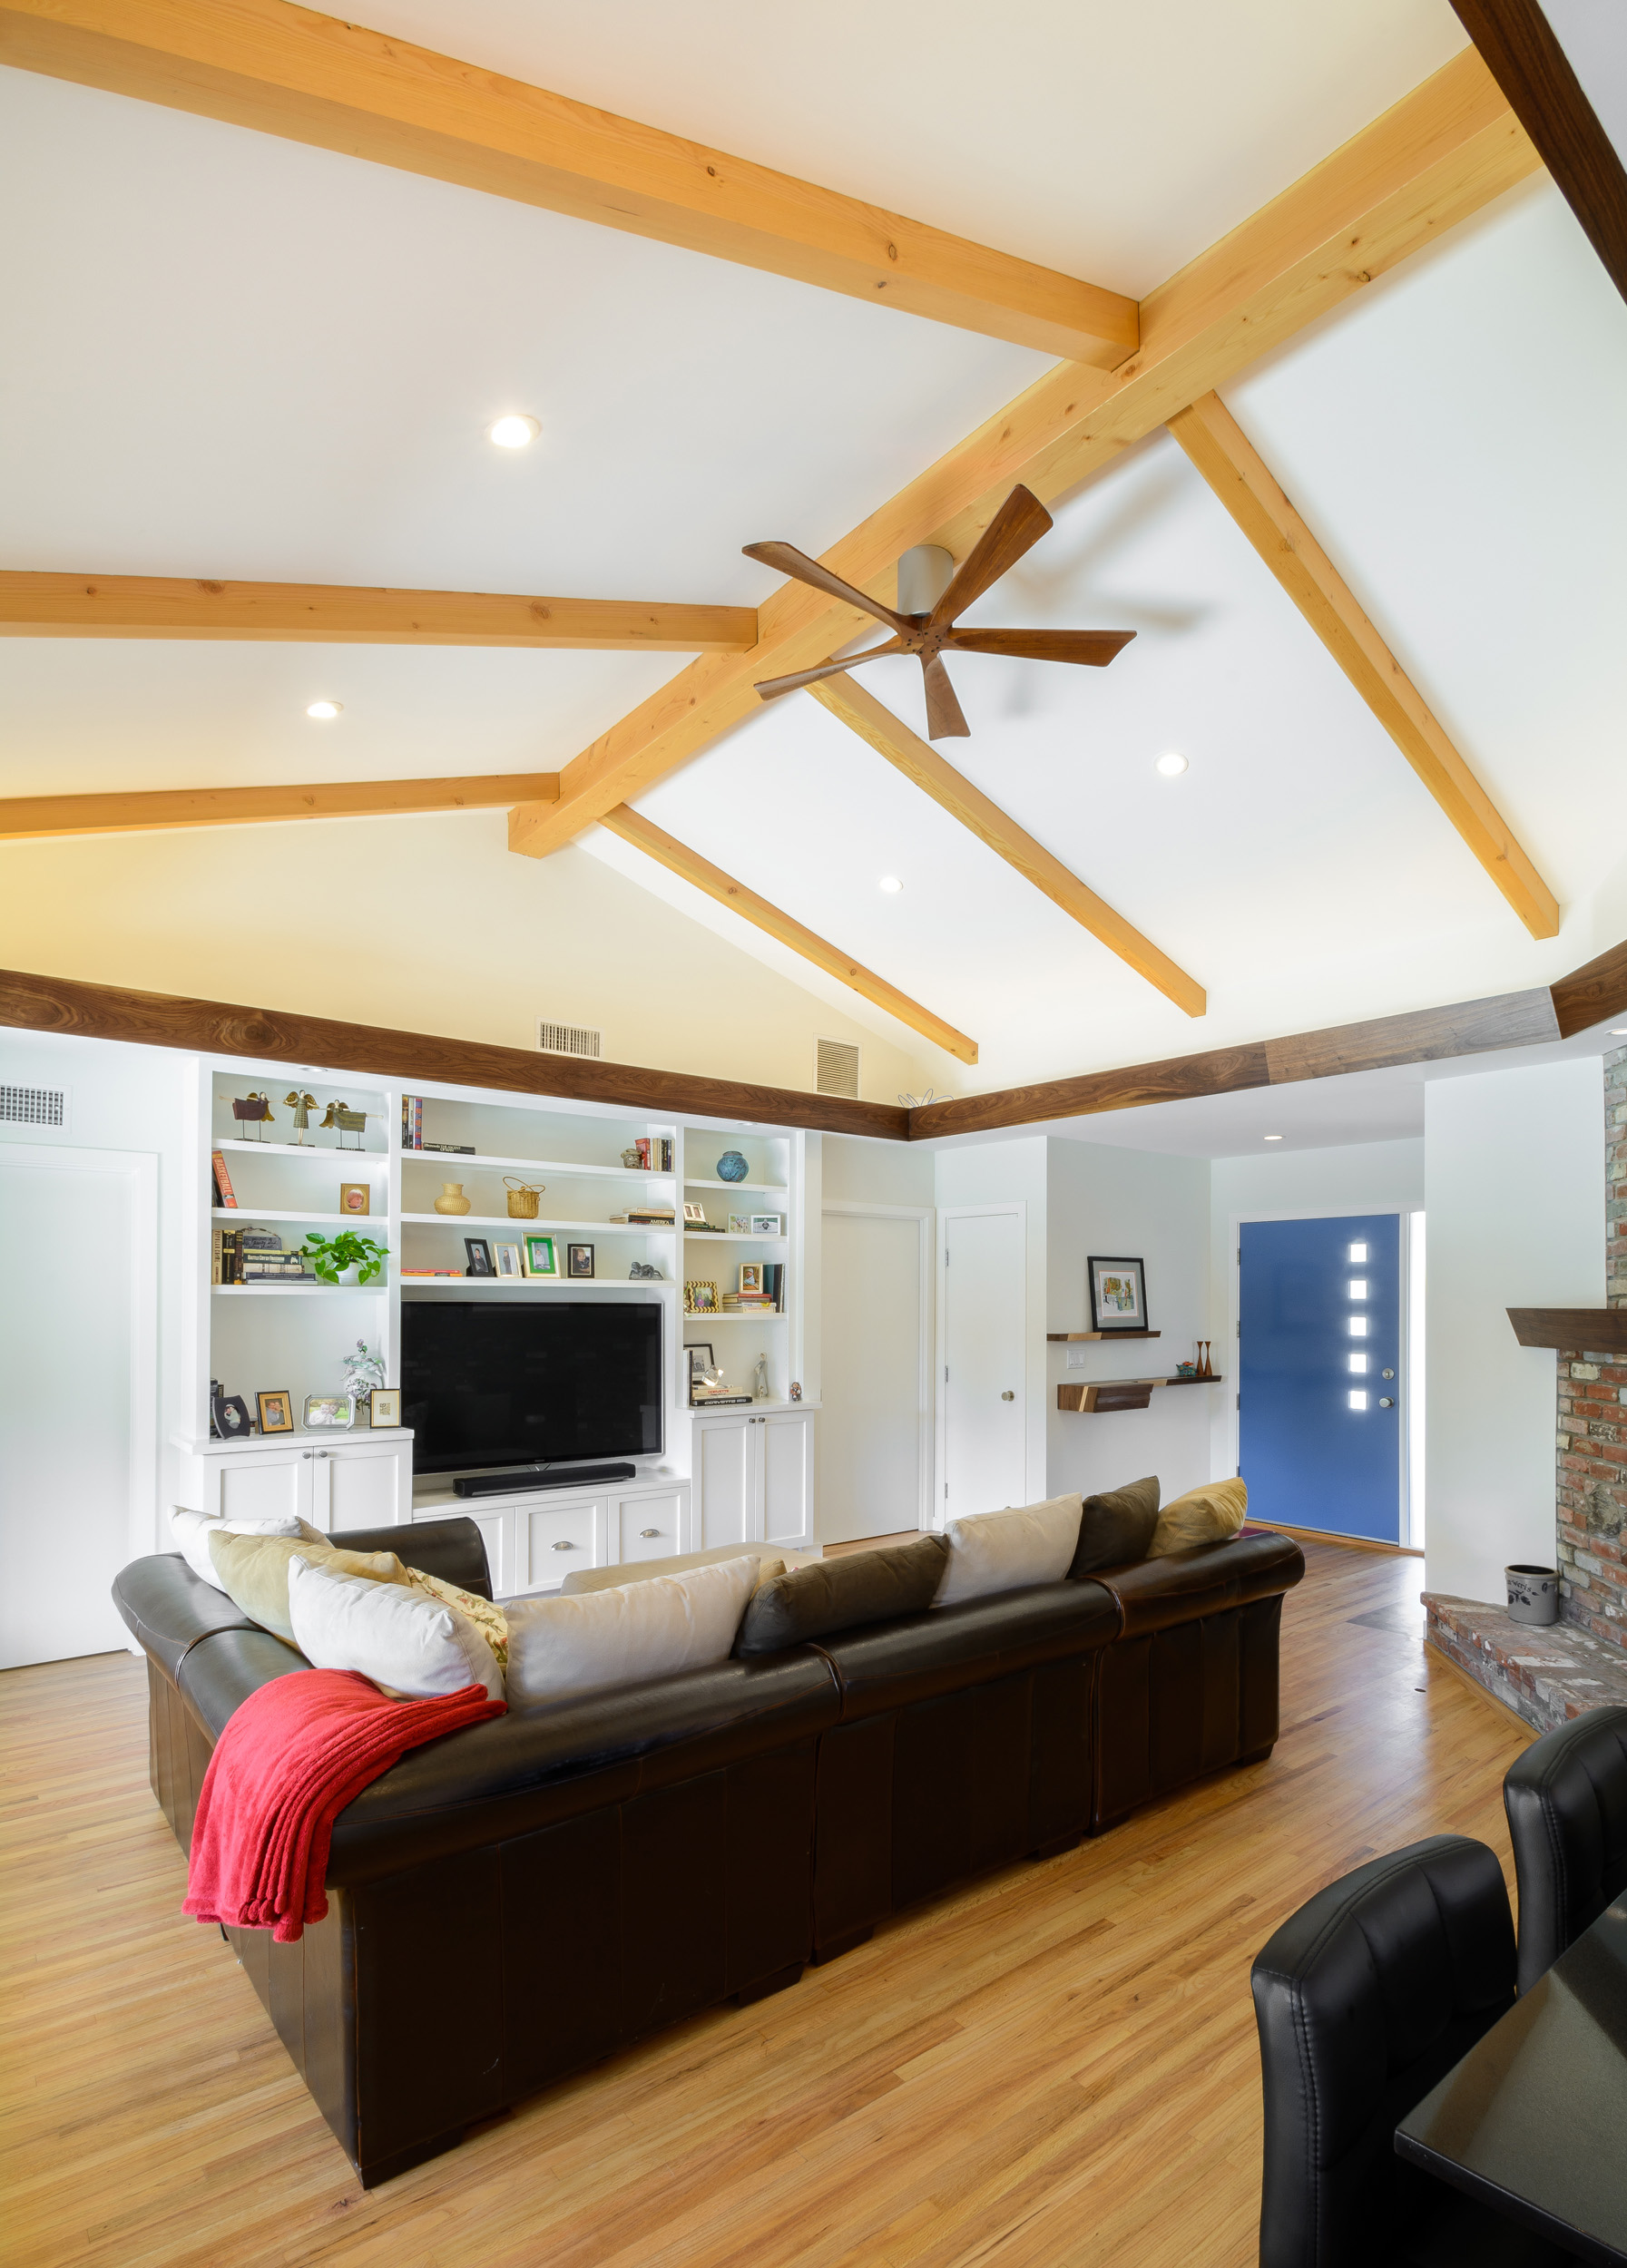 Bright and comfortable living room for this mid-century ranch remodel: cathedral ceiling, exposed wood beams, recessed lighting, white walls and Shaker style cabinets for the entertainment center